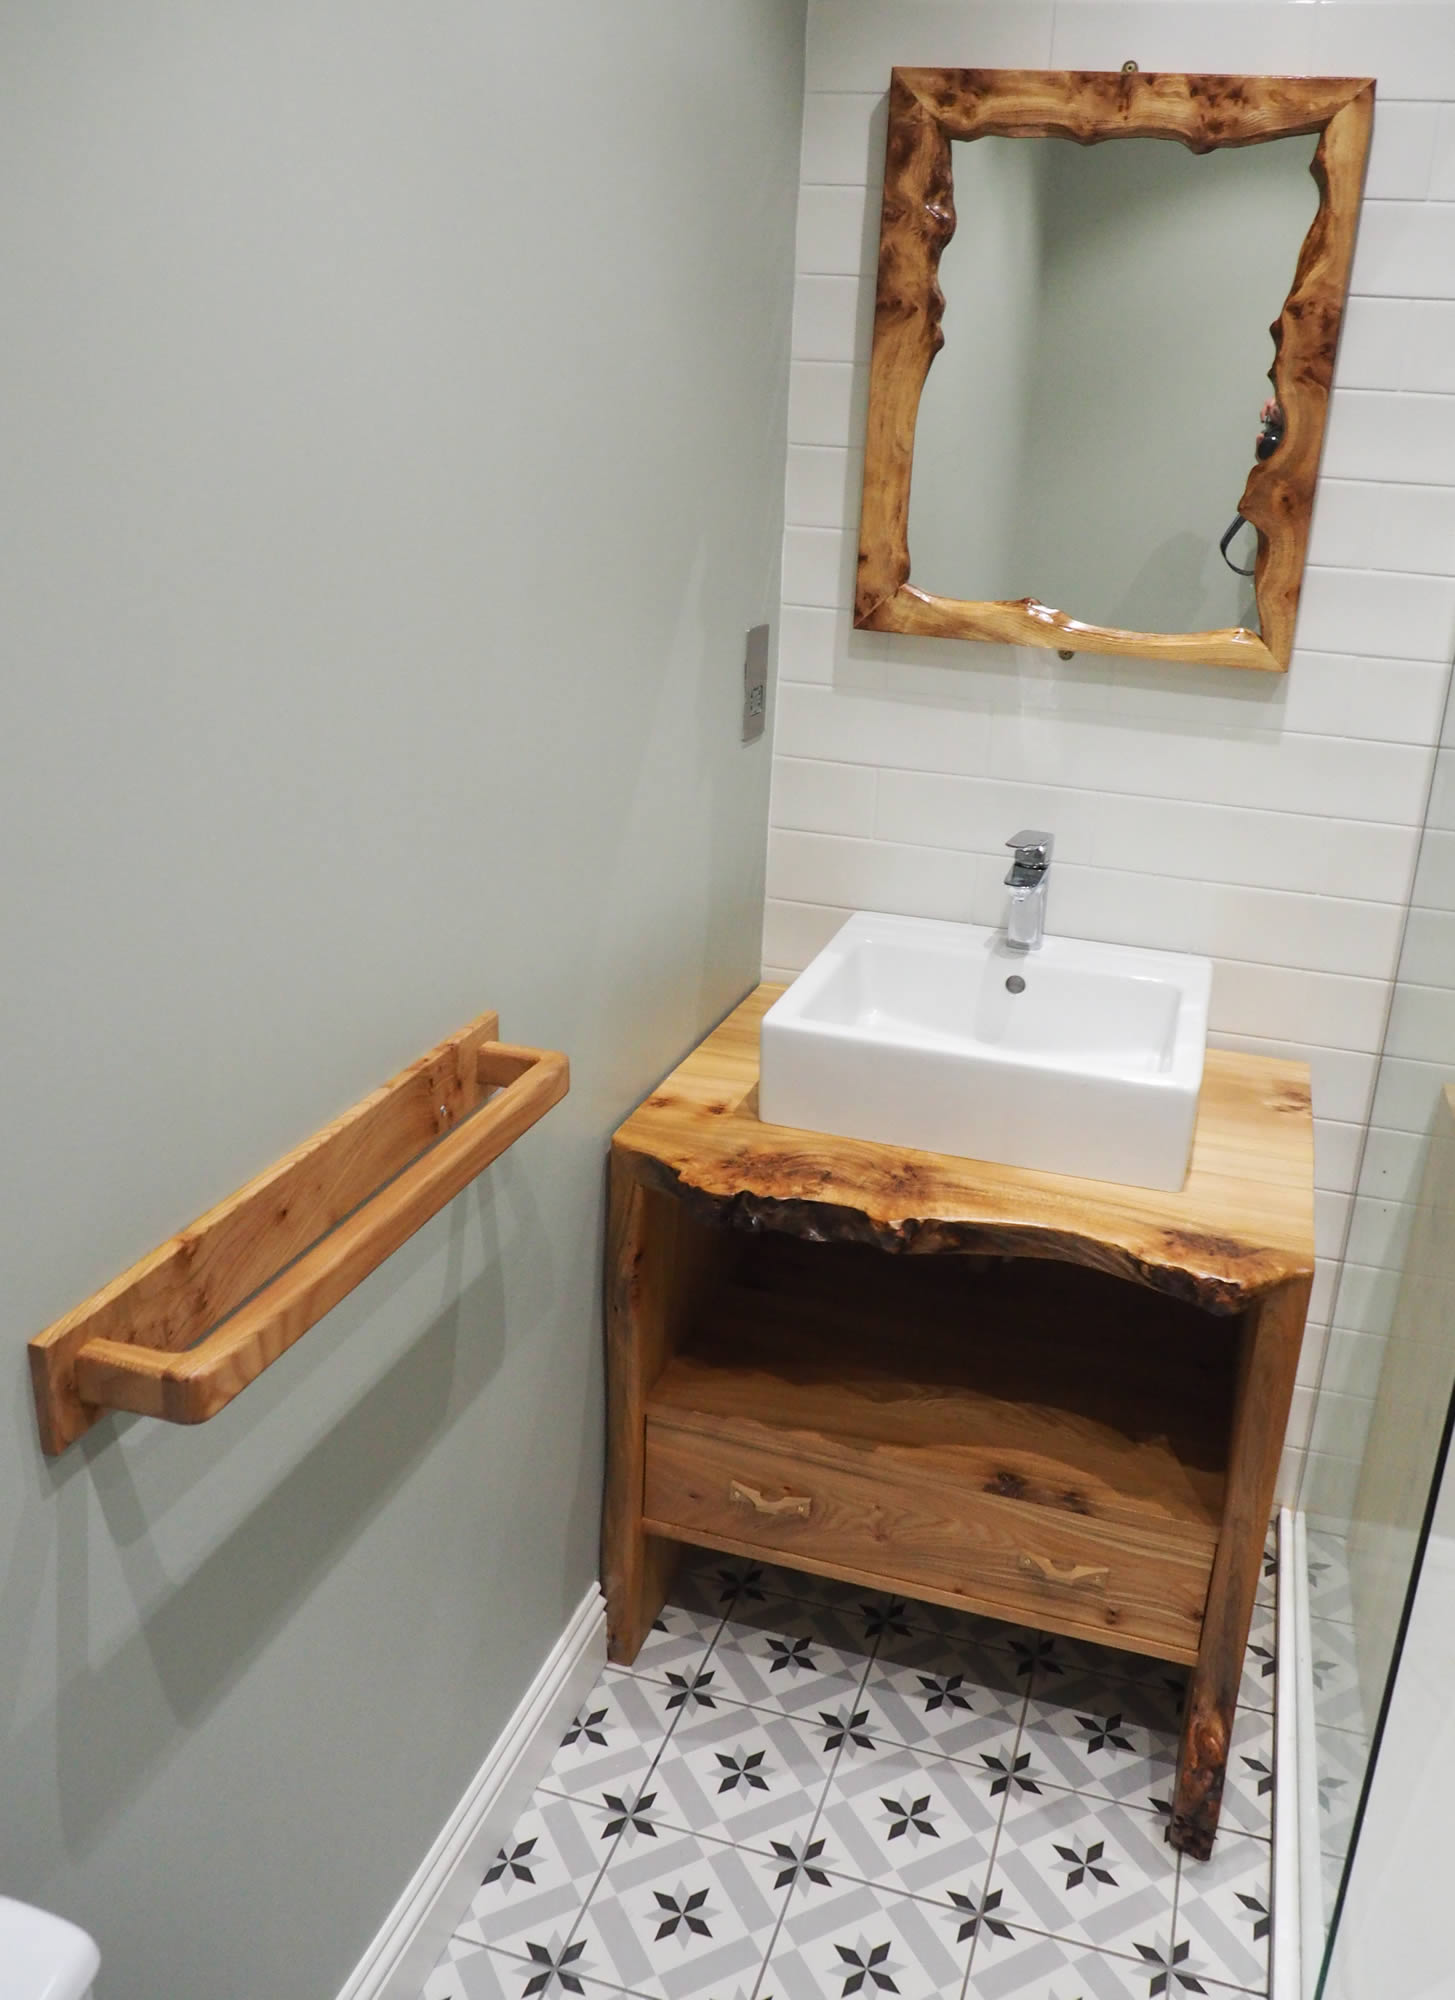 Bathroom cabinet, mirror and towel rail